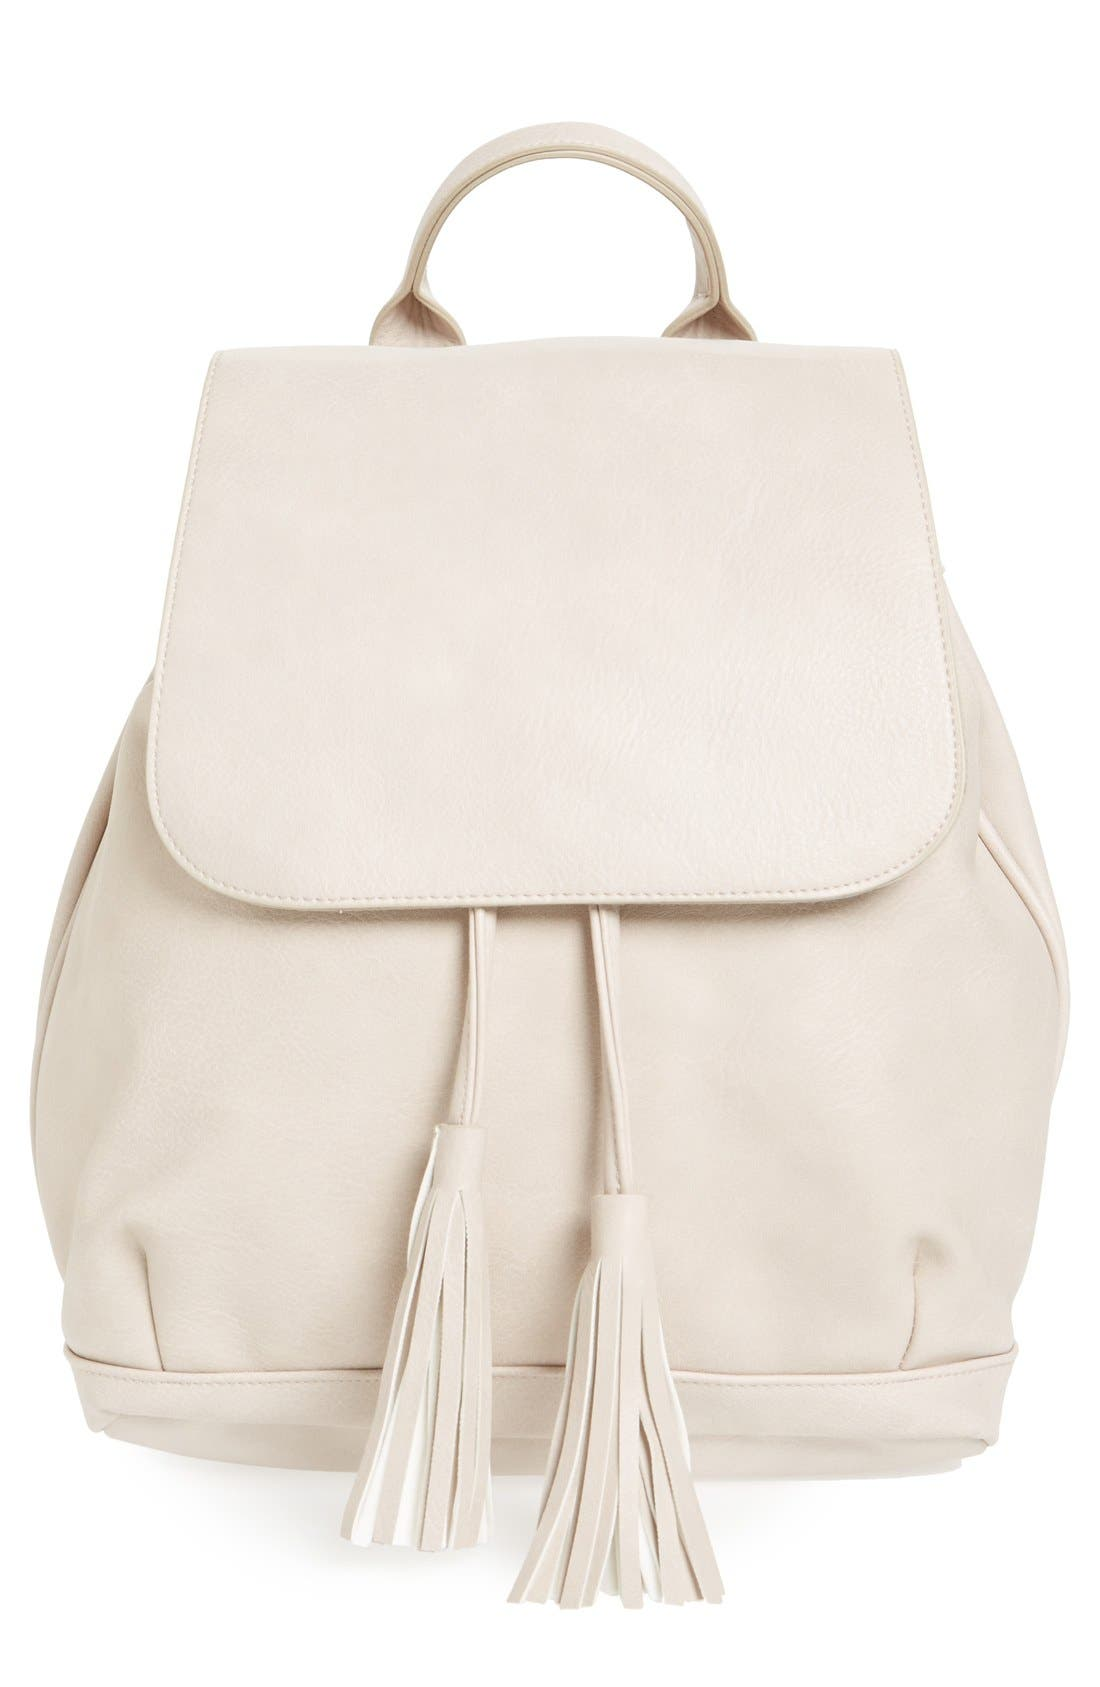 Alternate Image 1 Selected - BP. Tassel Flap Faux Leather Backpack